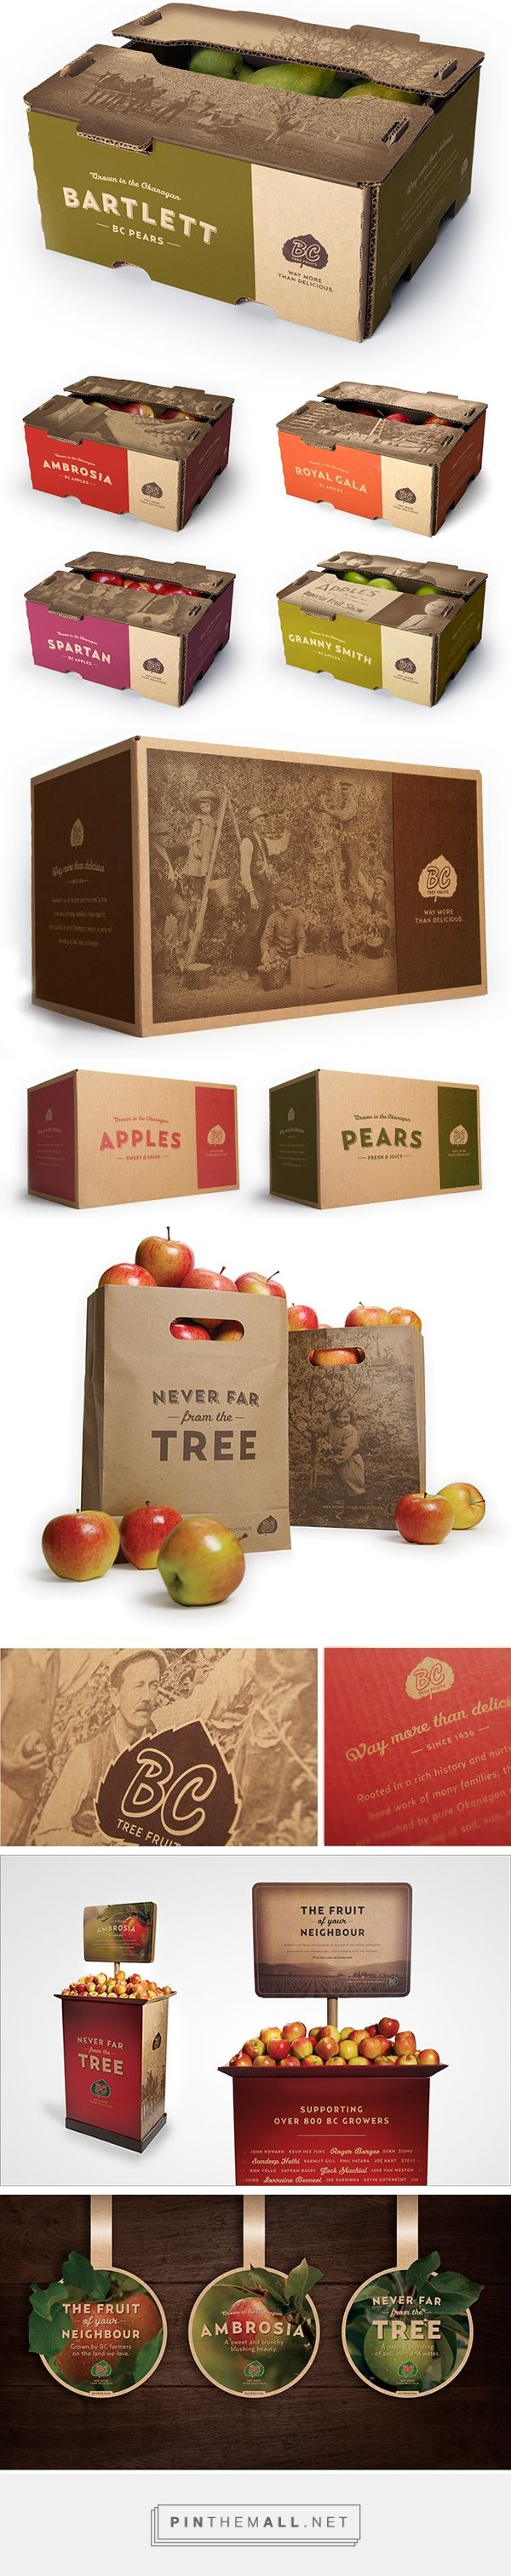 BC Tree Fruit Packaging & ReBrand on Behance by Briony Crane Vancouver, BC curated by Packaging Diva PD. Rebrand project was developed to highlight BC Tree Fruit's rich and authentic Okanagan heritage.